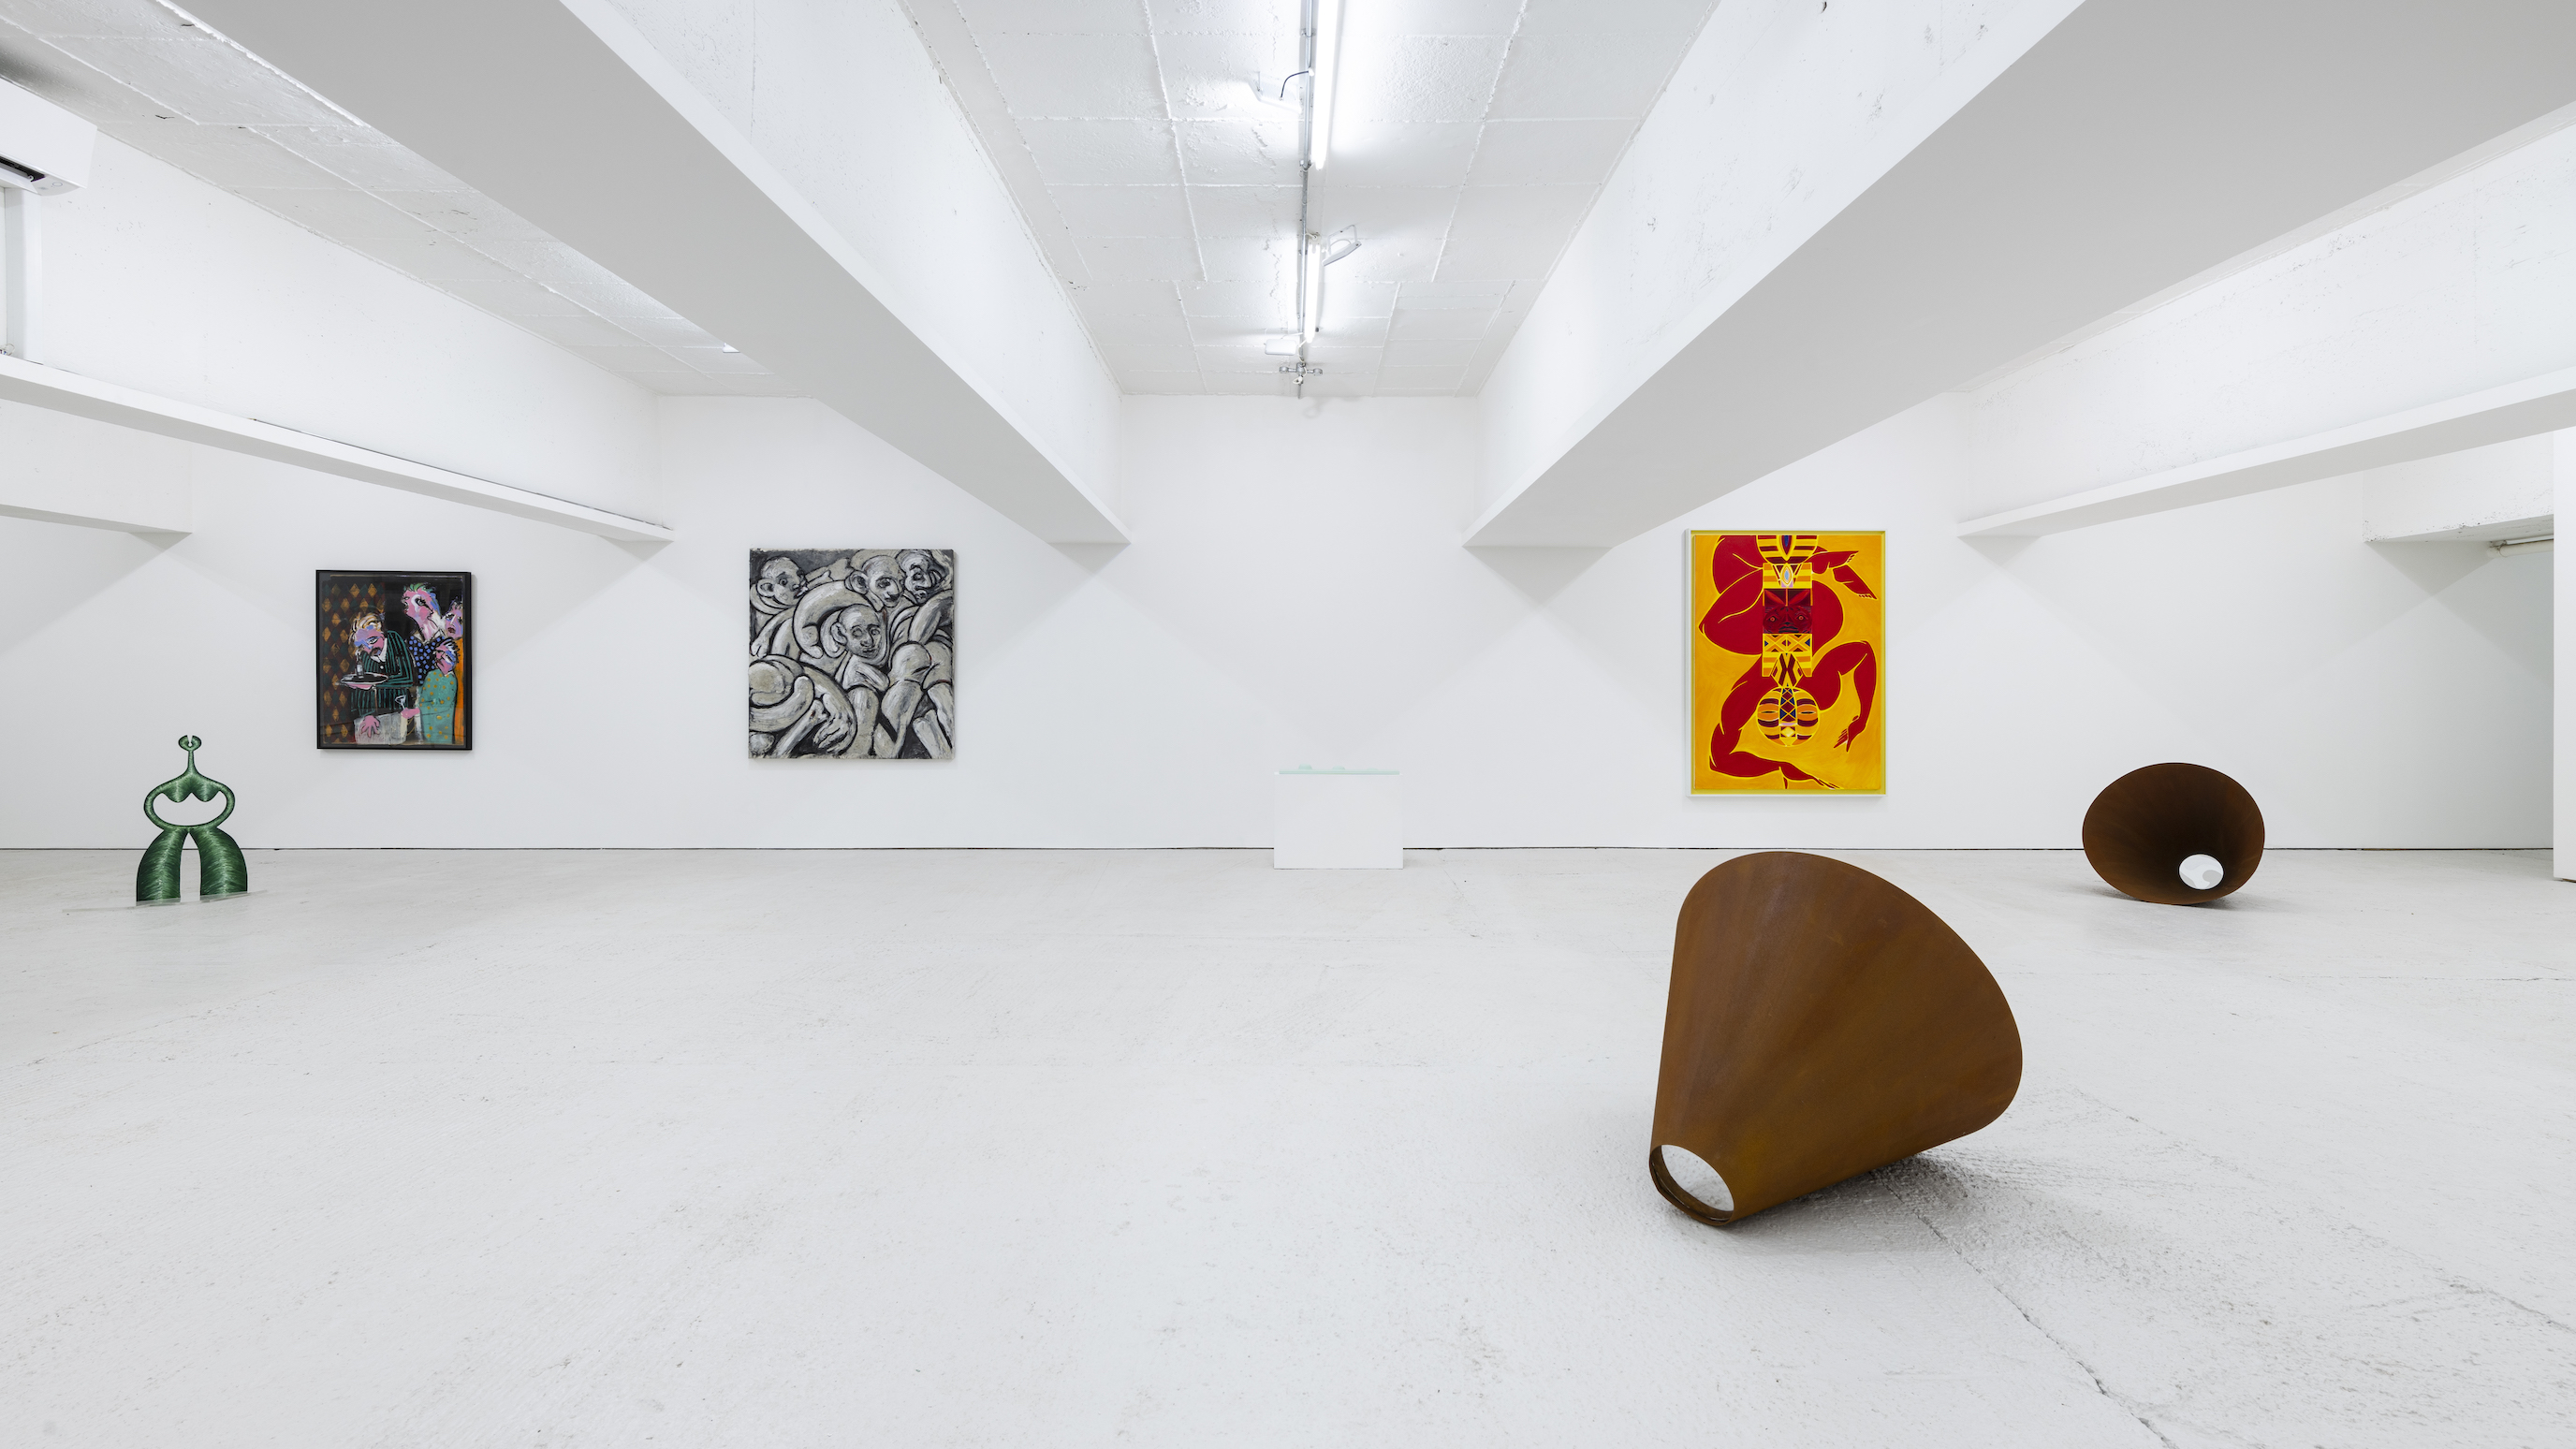 Installation view 2, Open Call, König London, 2020. photo by Damian Griffiths